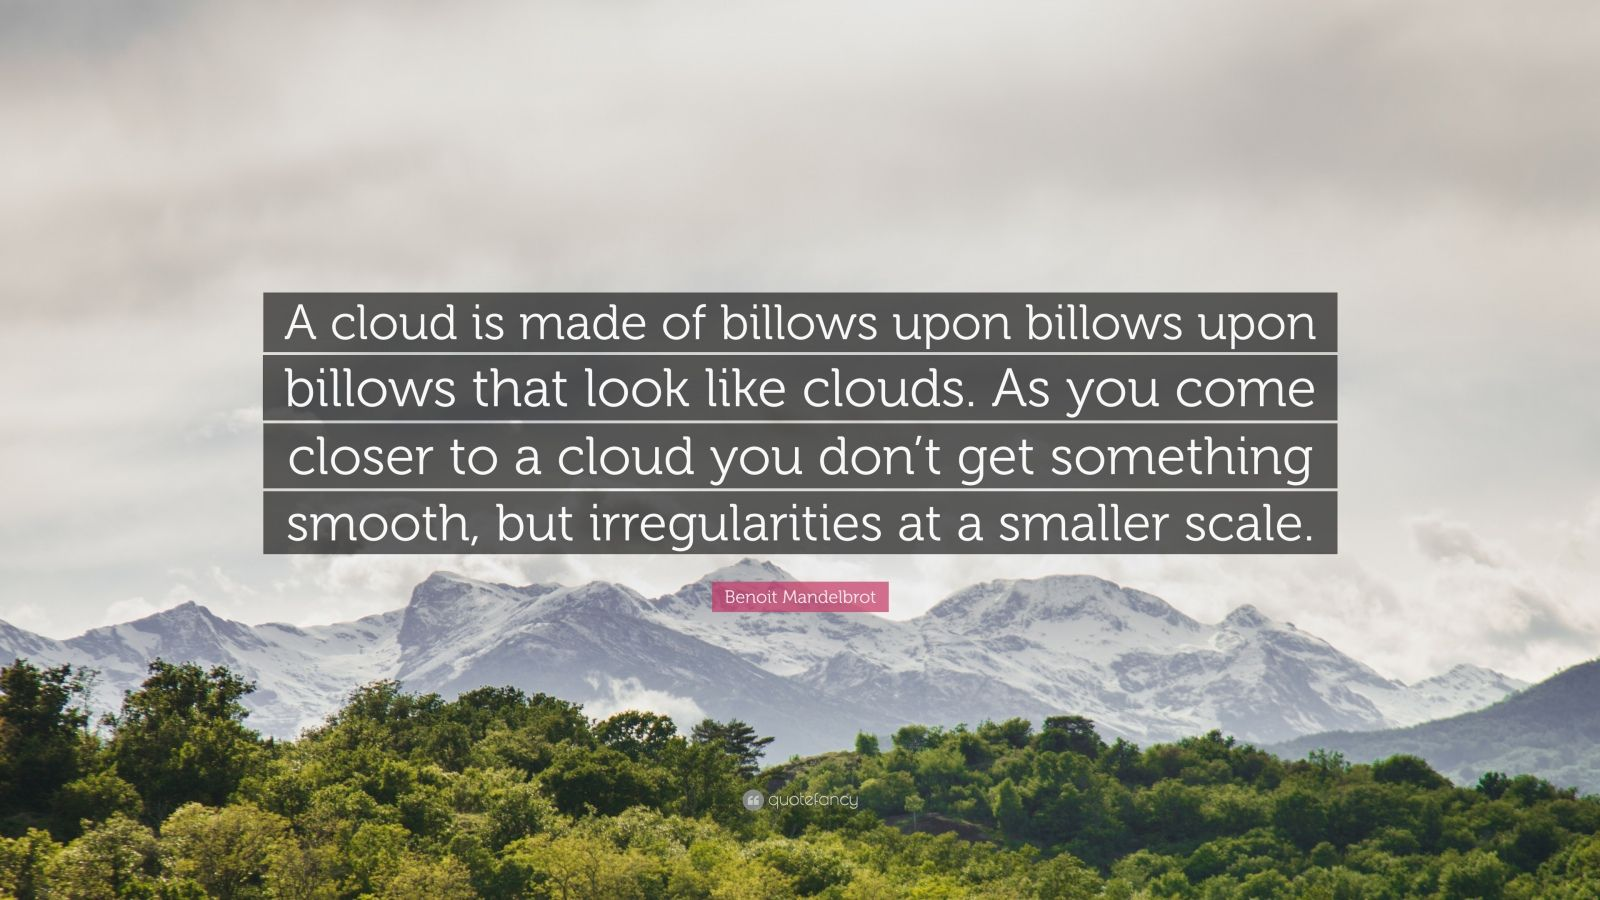 """Benoit Mandelbrot Quote: """"A cloud is made of billows upon billows upon billows that look like clouds. As you come closer to a cloud you don't get something smooth, but irregularities at a smaller scale."""""""